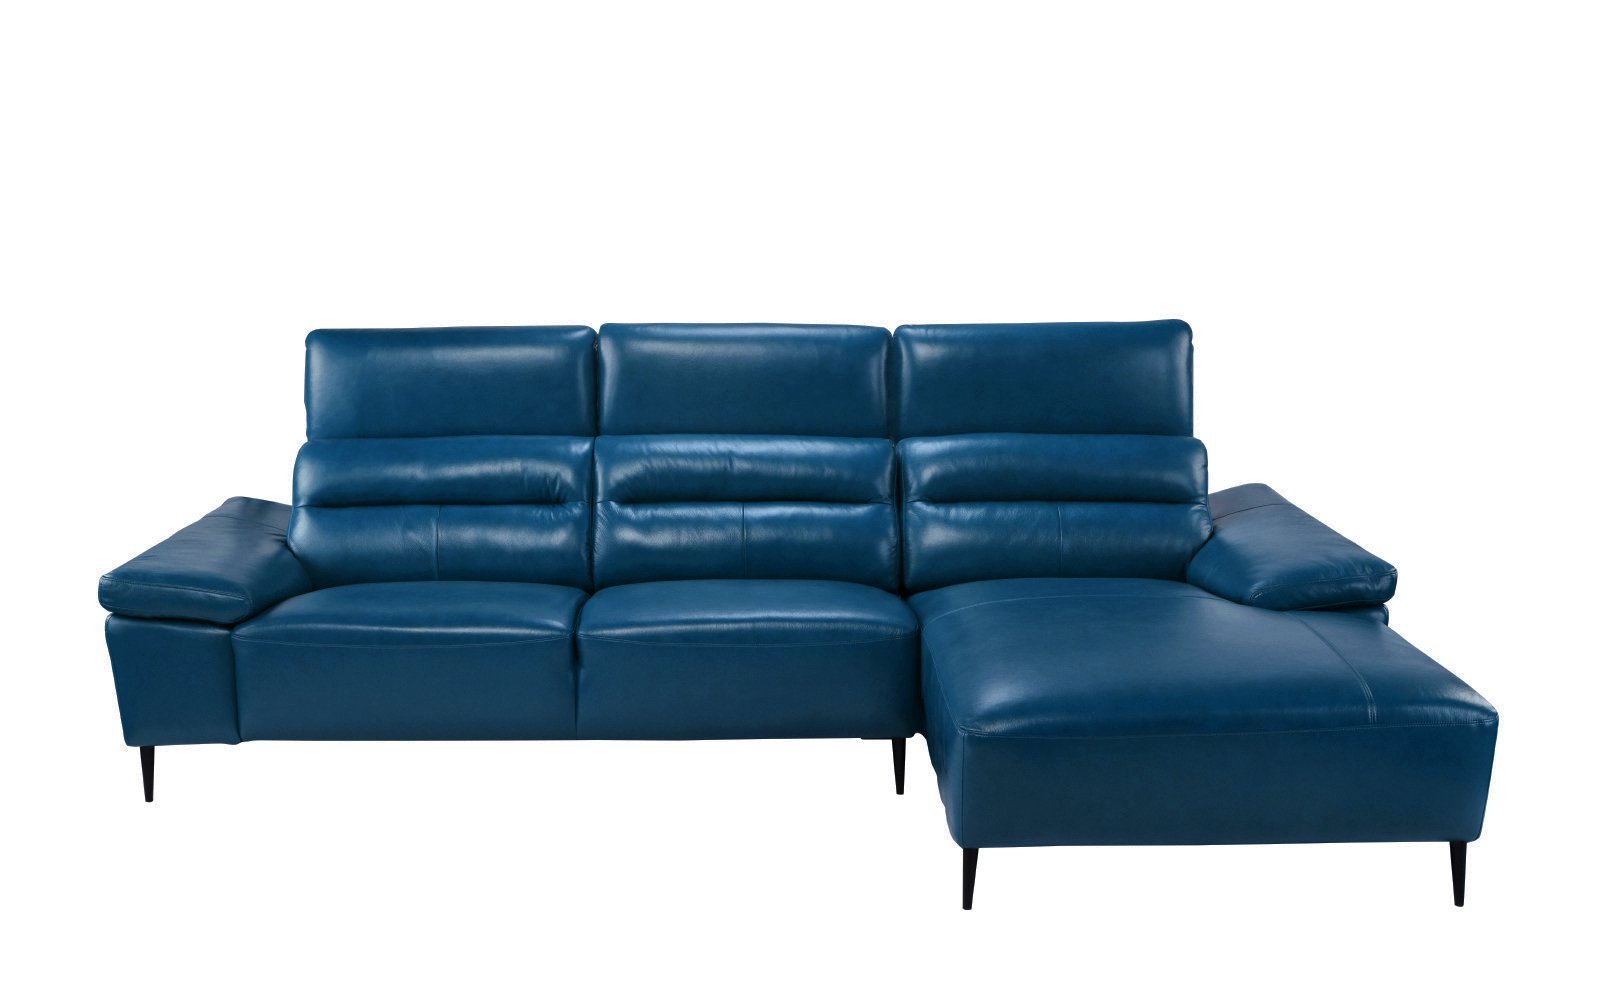 Trendy Classic Low Profile Sectional Couch With Left Chaise Intended For Dulce Mid Century Chaise Sofas Dark Blue (View 5 of 25)